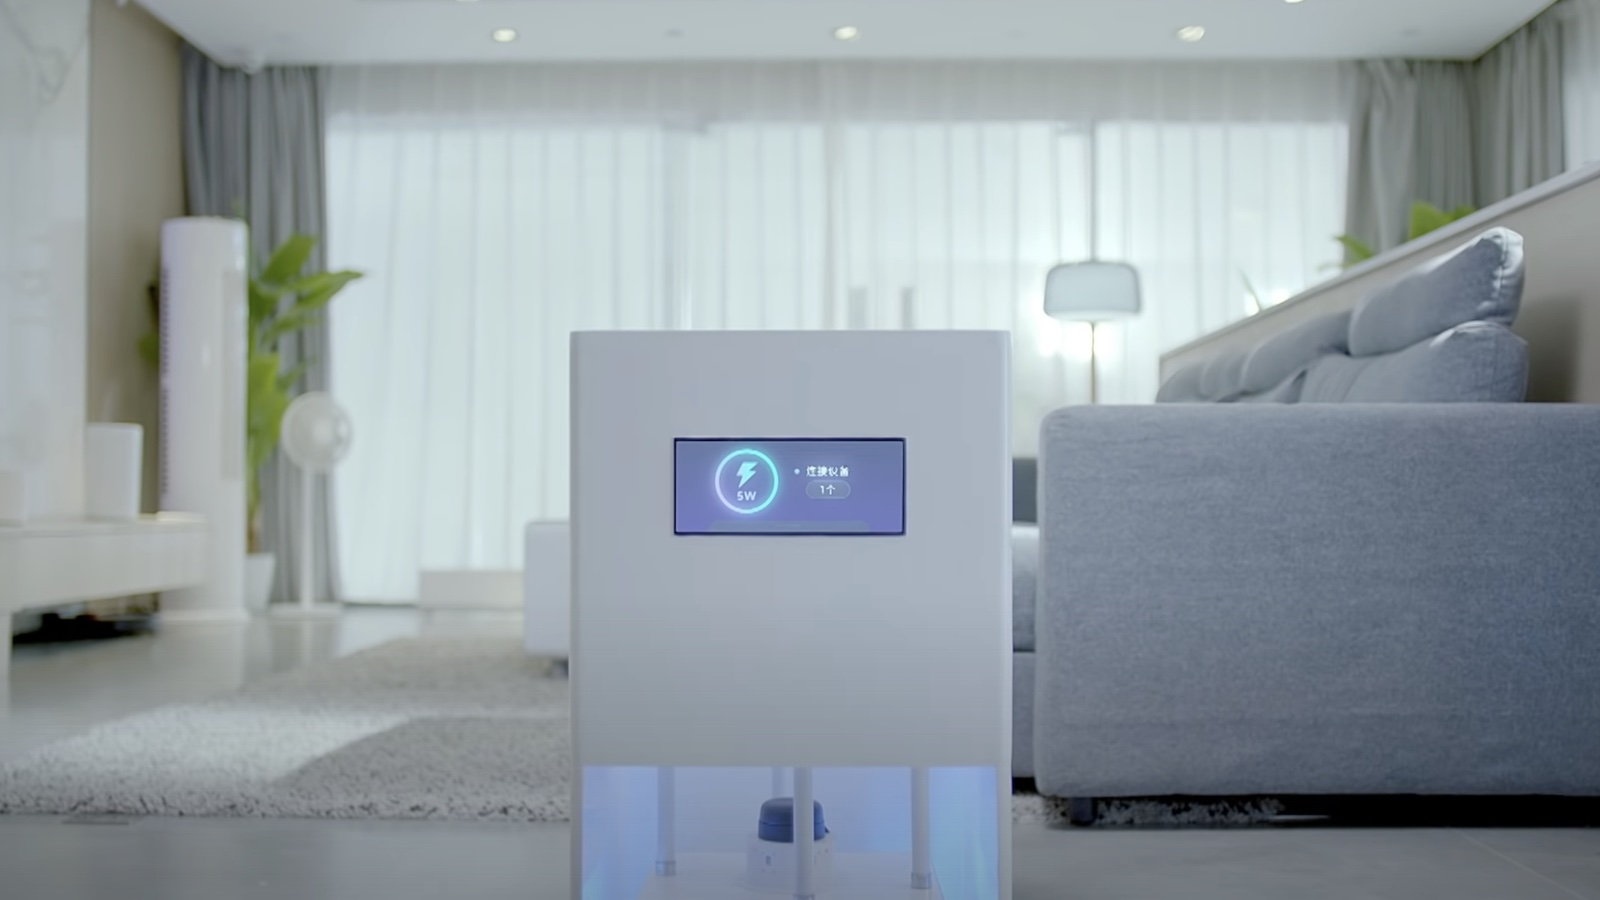 Mi Air Charge Technology offers 5W remote charging within a radius of several meters